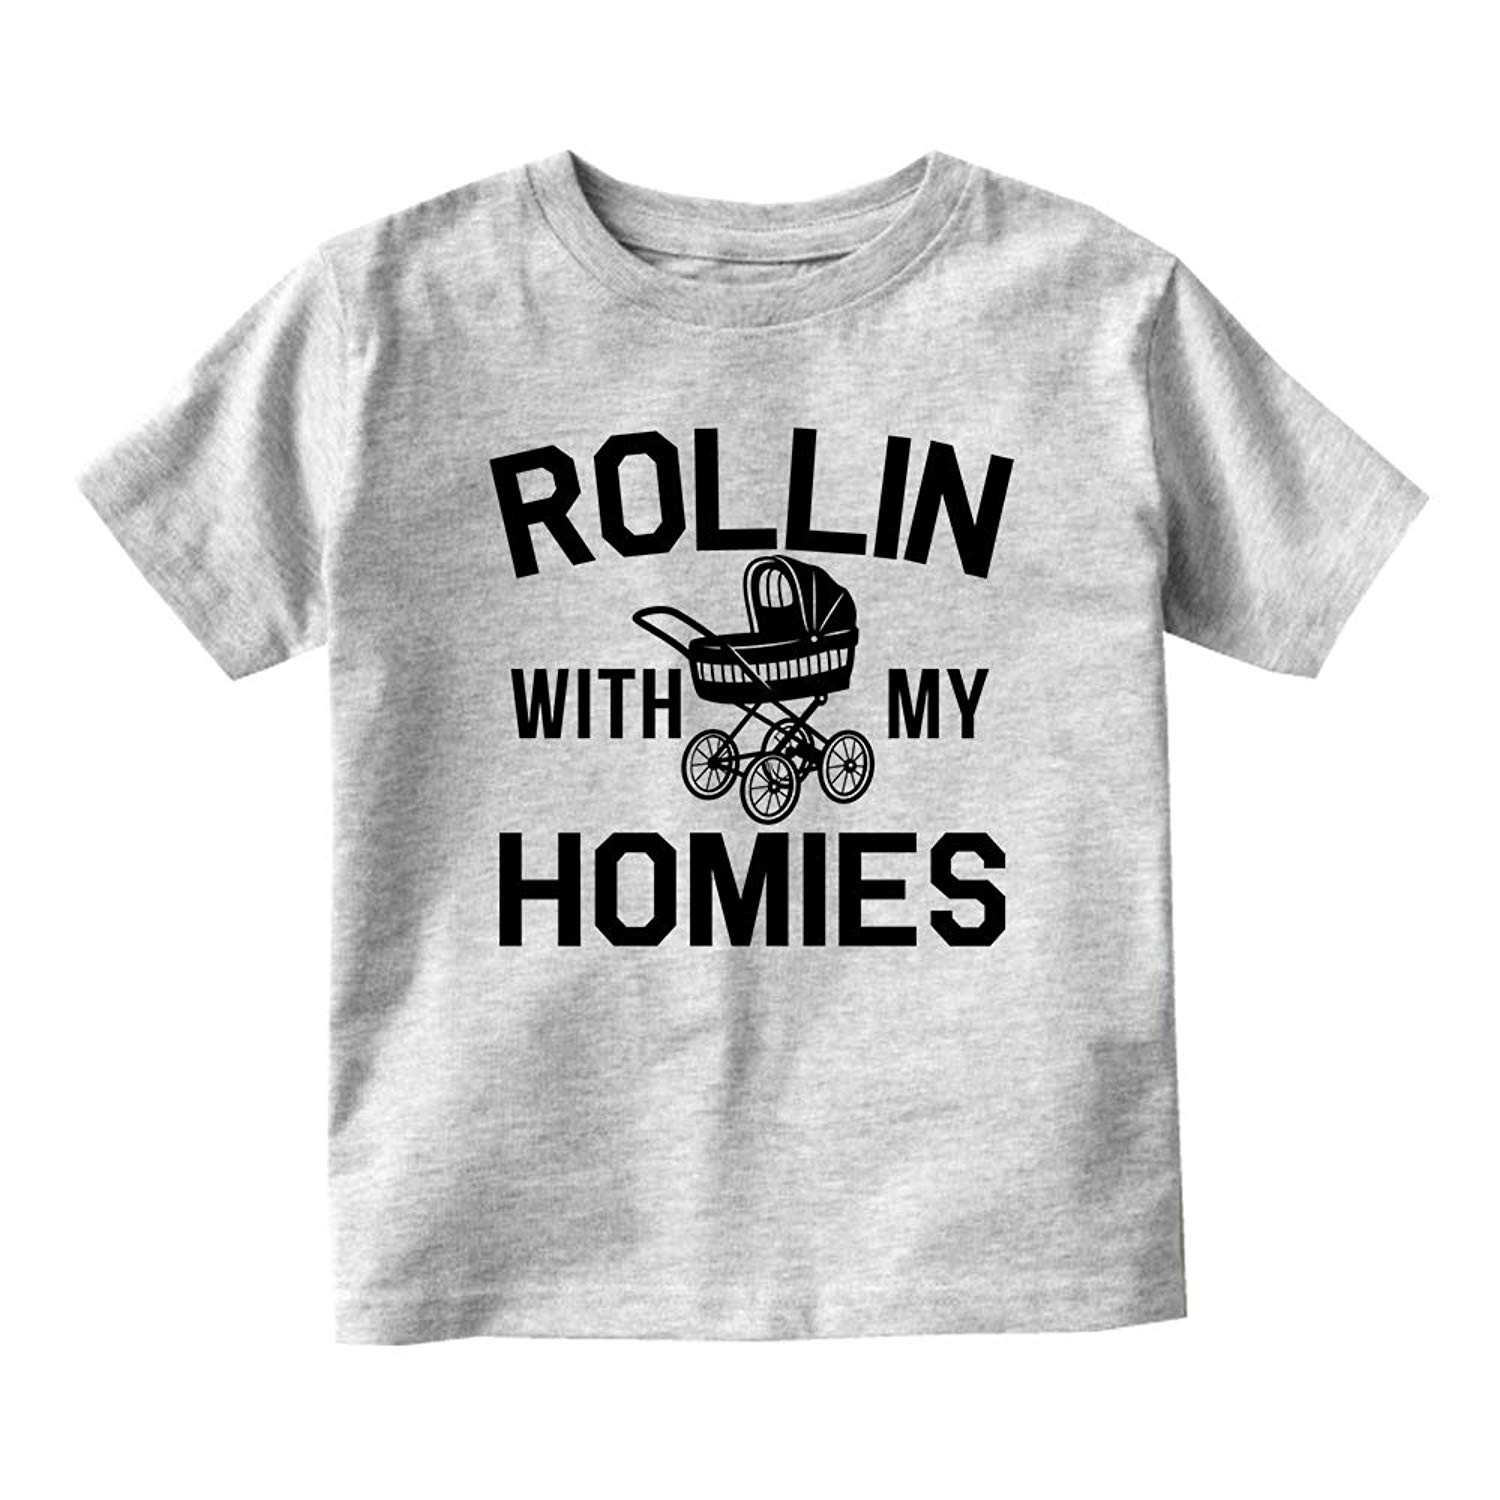 9c204f6d Get Quotations · Kids Streetwear Rollin with My Homies Stroller Baby  Toddler T-Shirt Tee